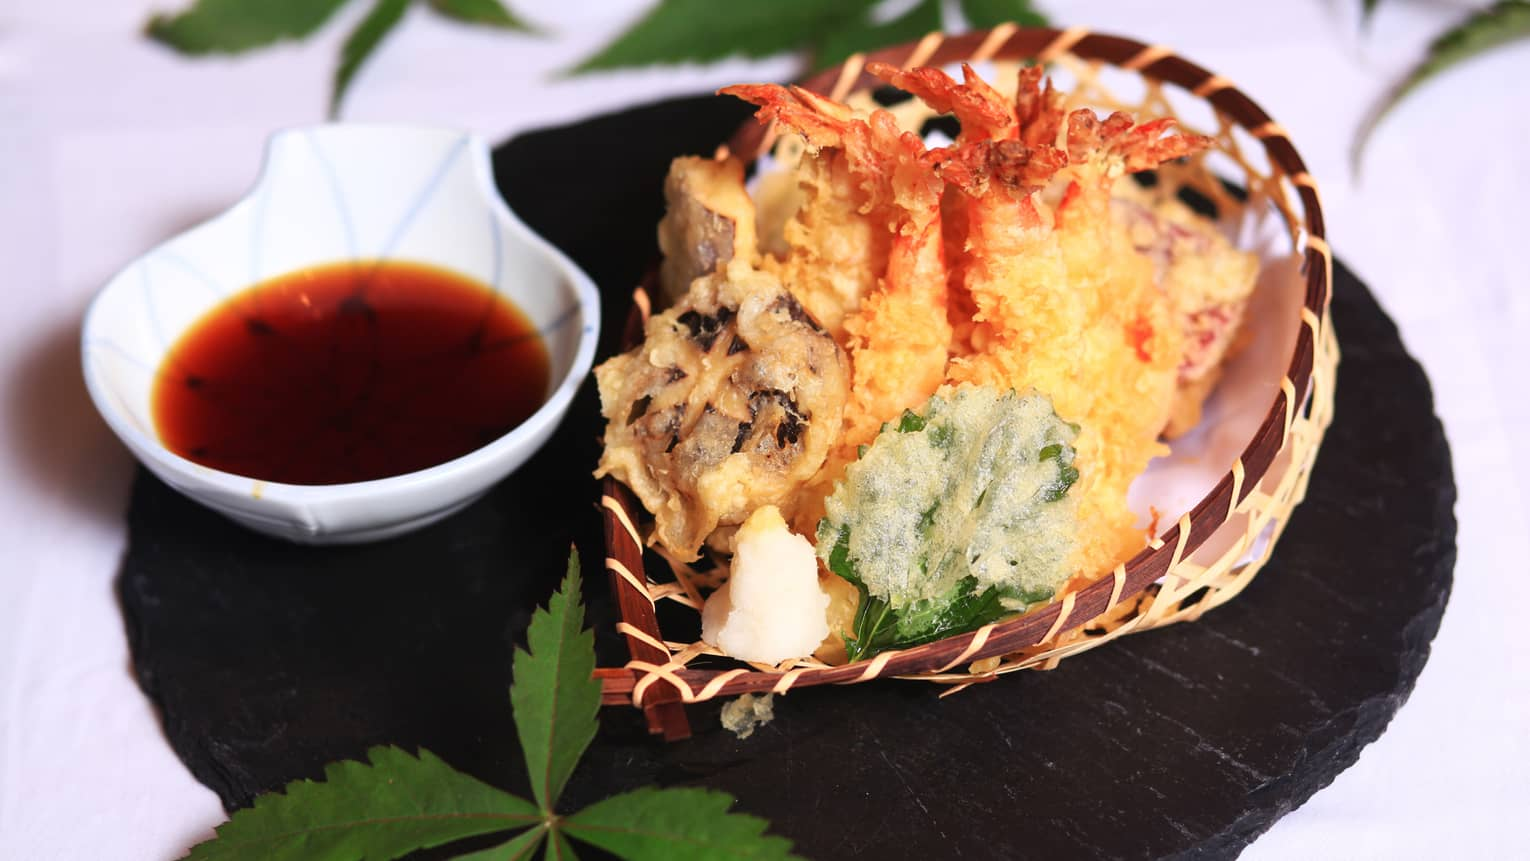 Fried prawn tempura in basket next to small bowl with sauce